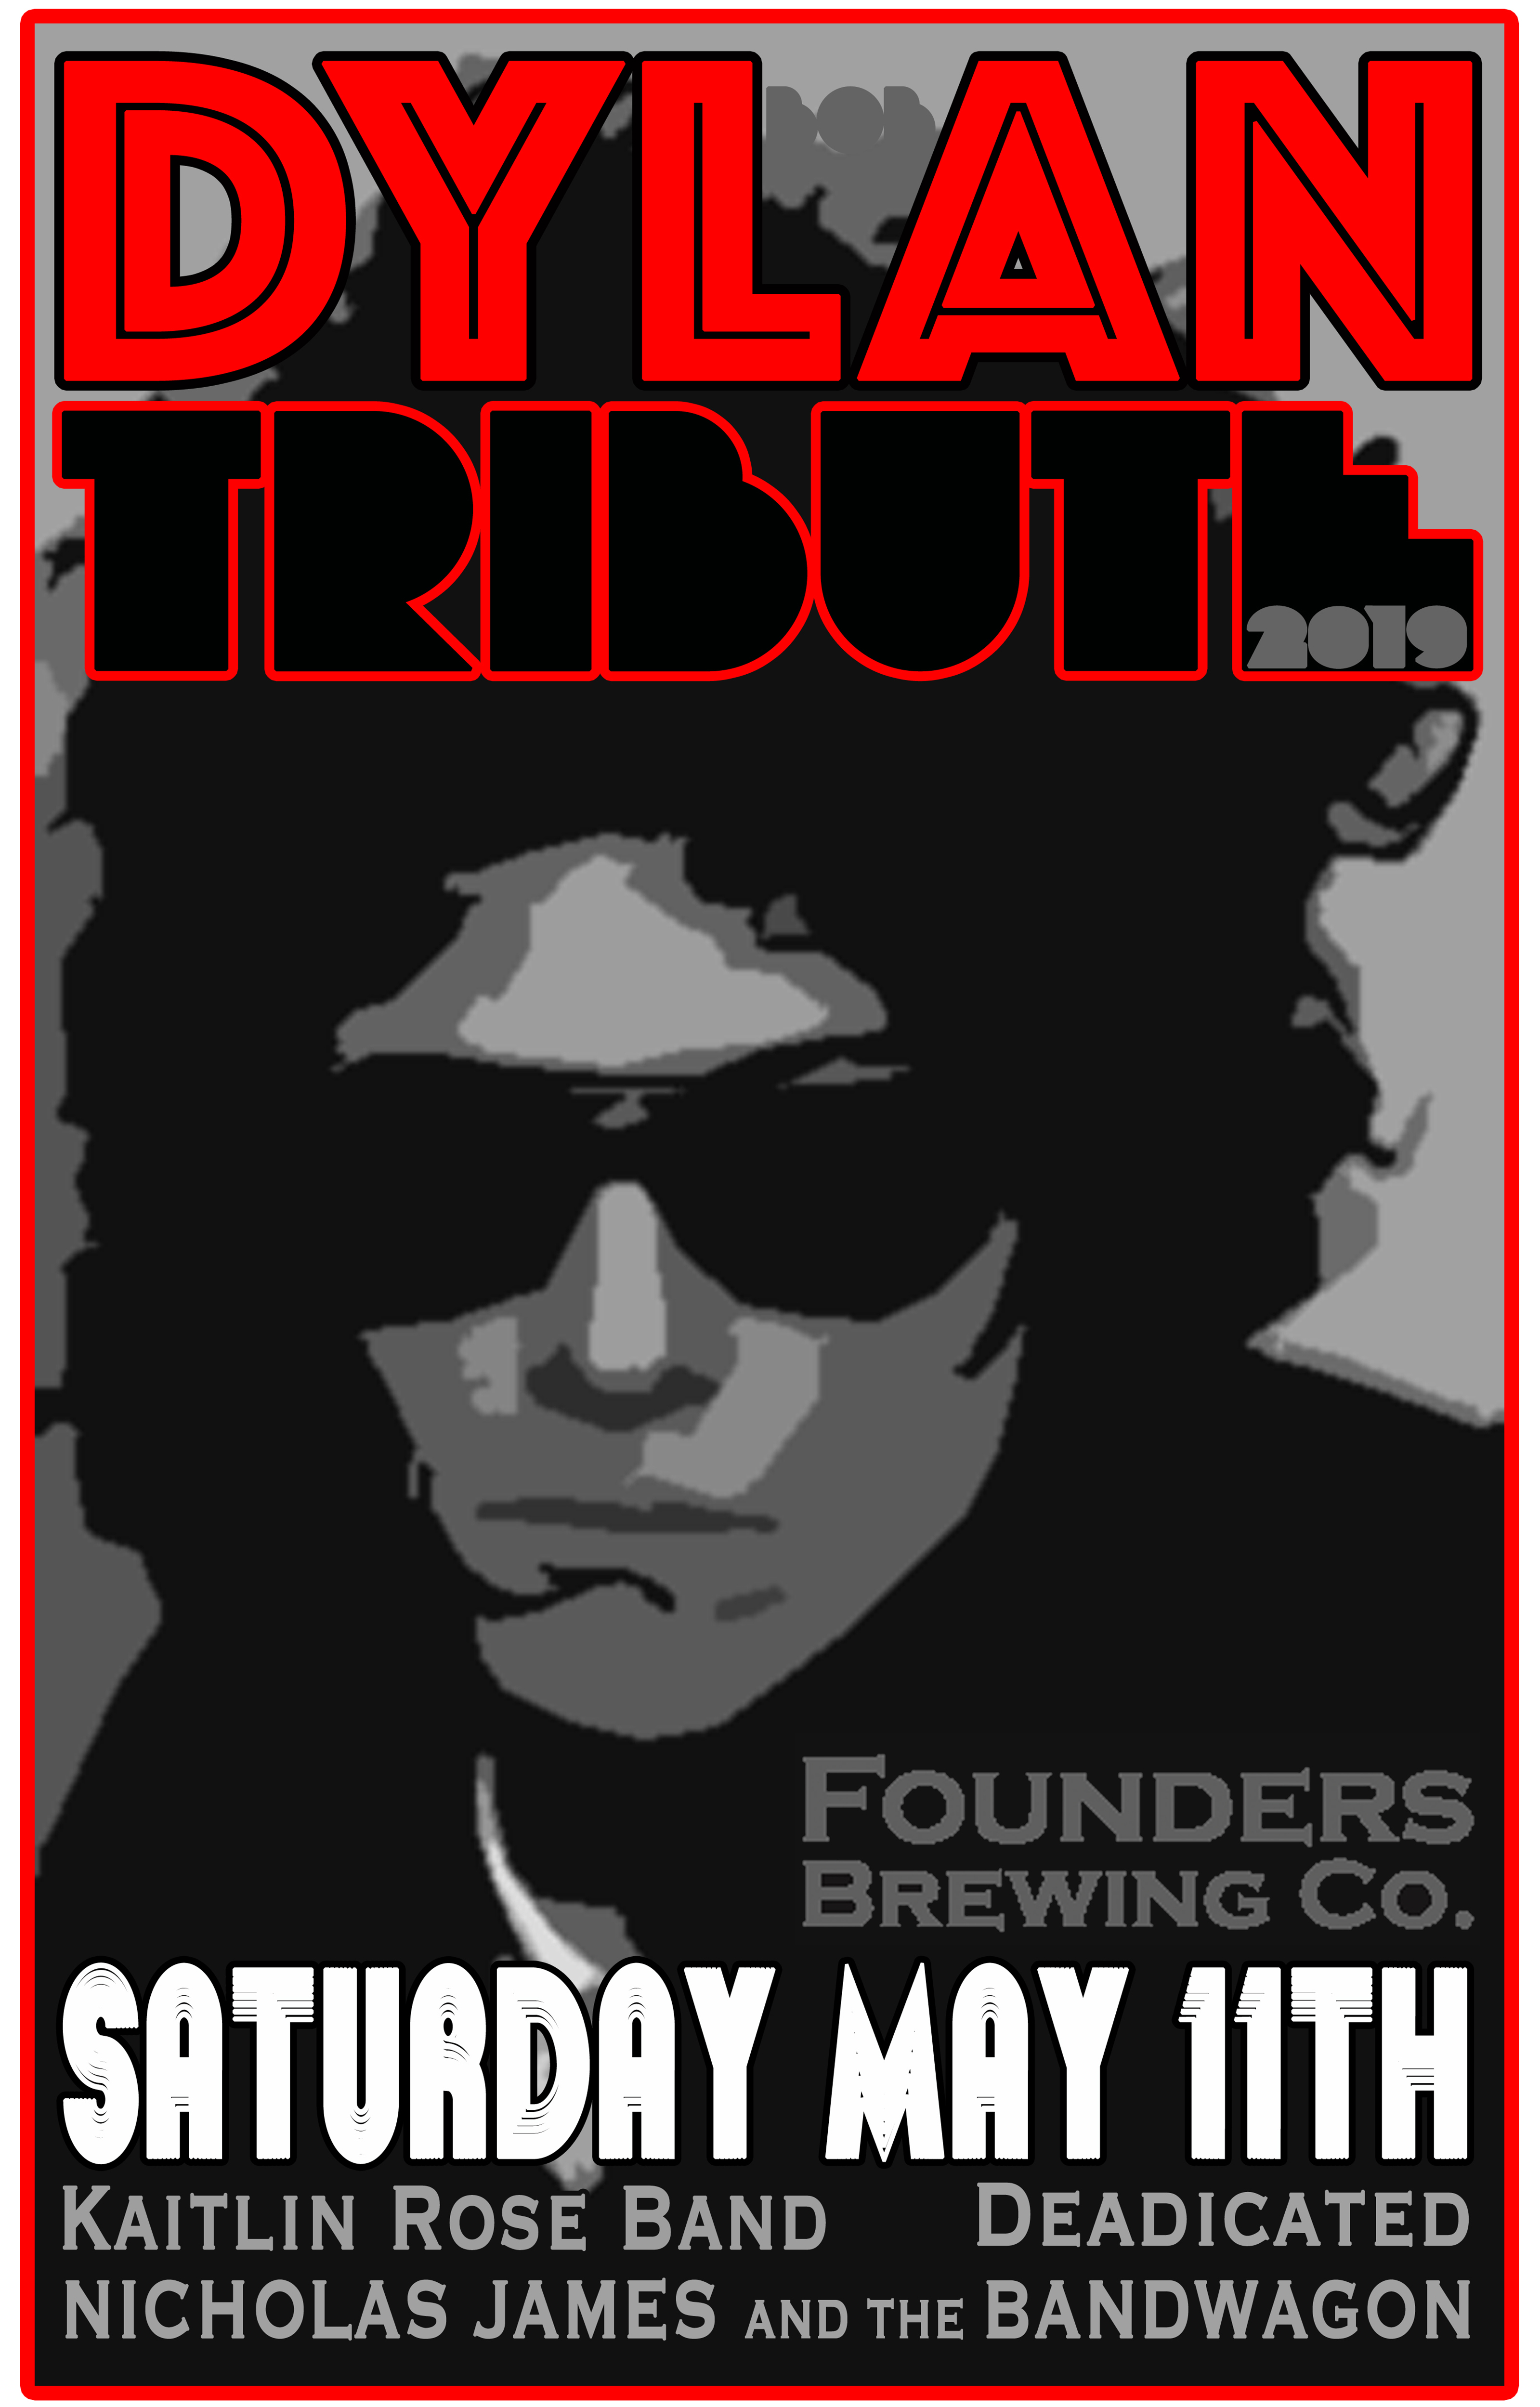 Bob Dylan Tribute event poster hosted by Founders